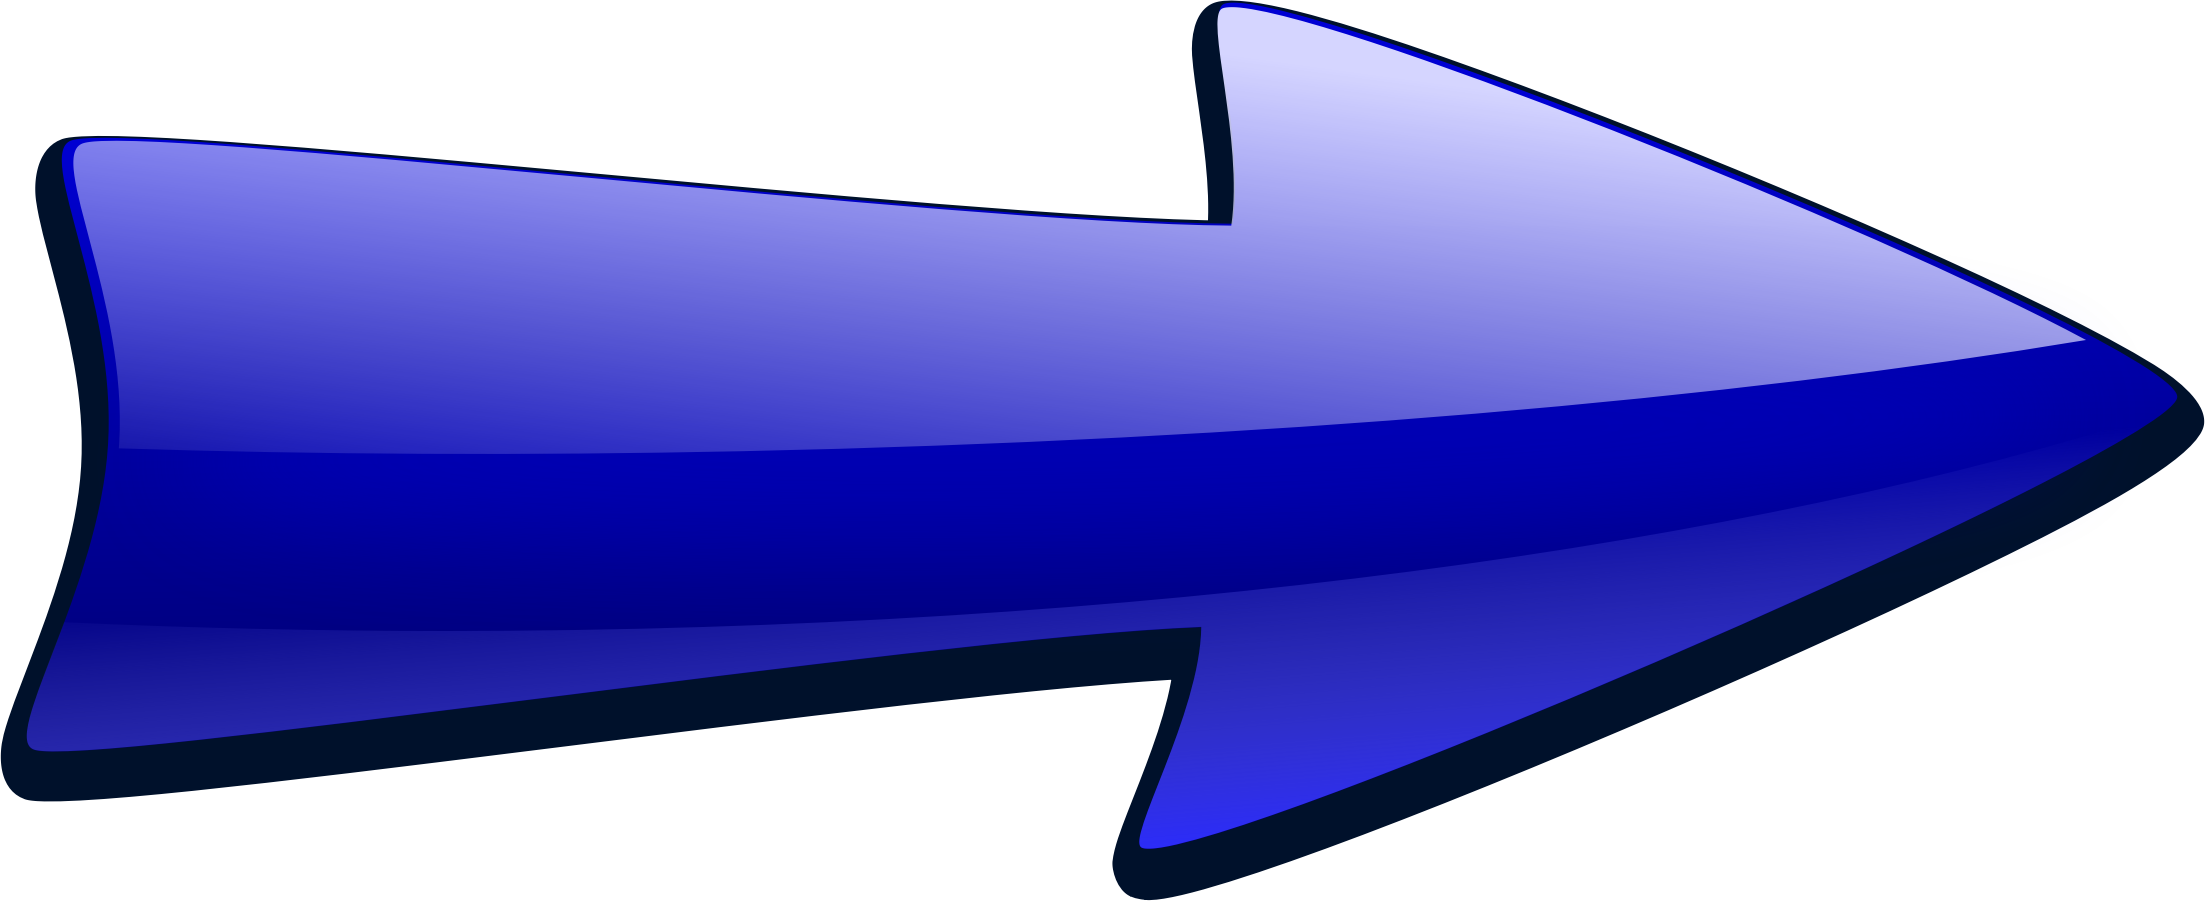 freeuse download Blue arrow clipart. Shiny big image png.